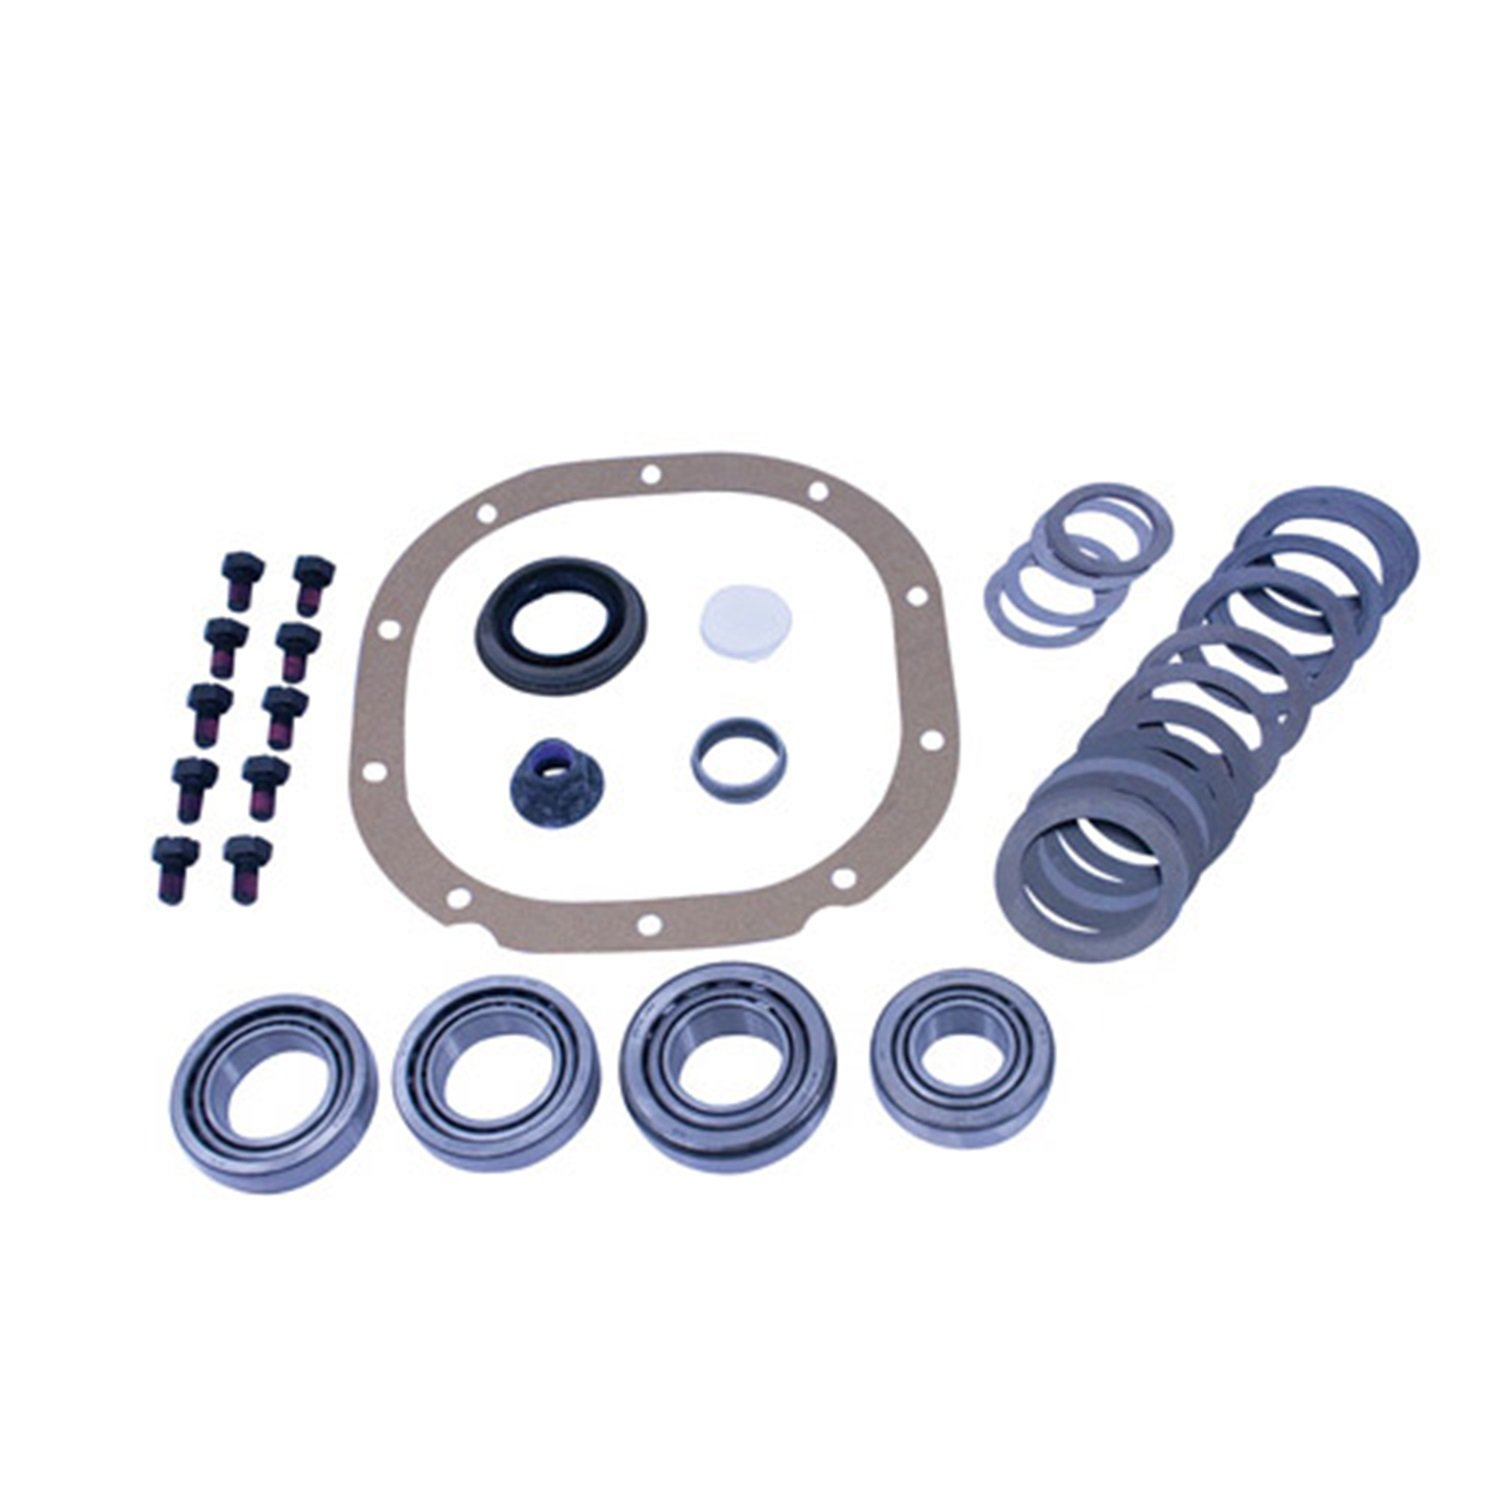 Ford Racing (M-4210-B2) Ring and Pinion Installation Kit by Ford